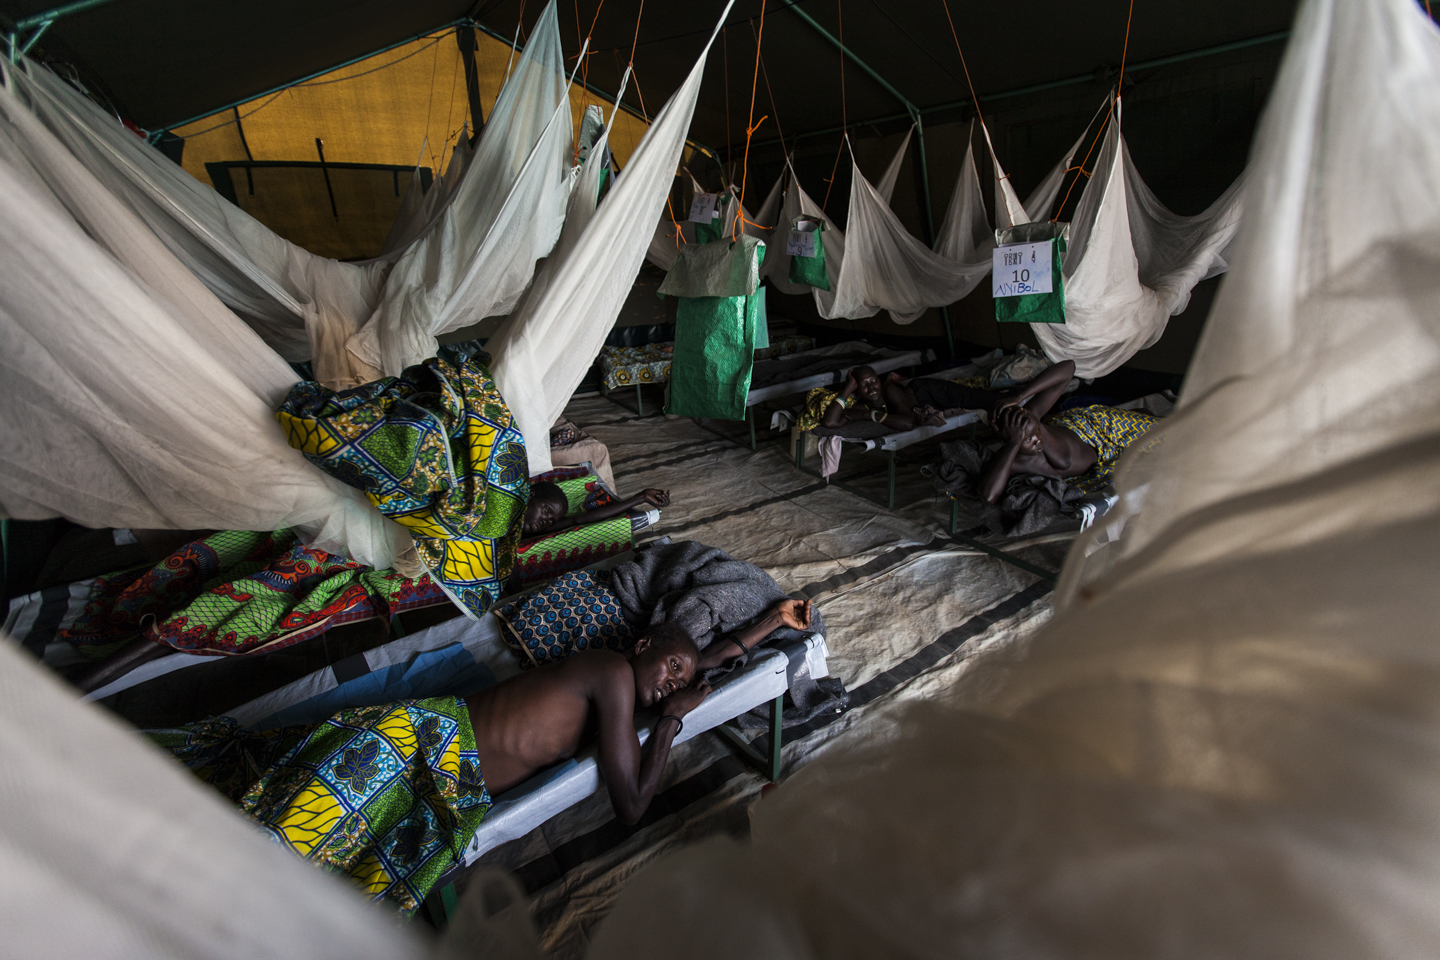 Women recover from their surgeries in the fistula village at the Gogrial Health Care Center, which is run by Médecins Sans Frontières (MSF) in Gogrial, South Sudan, November 27, 2012.